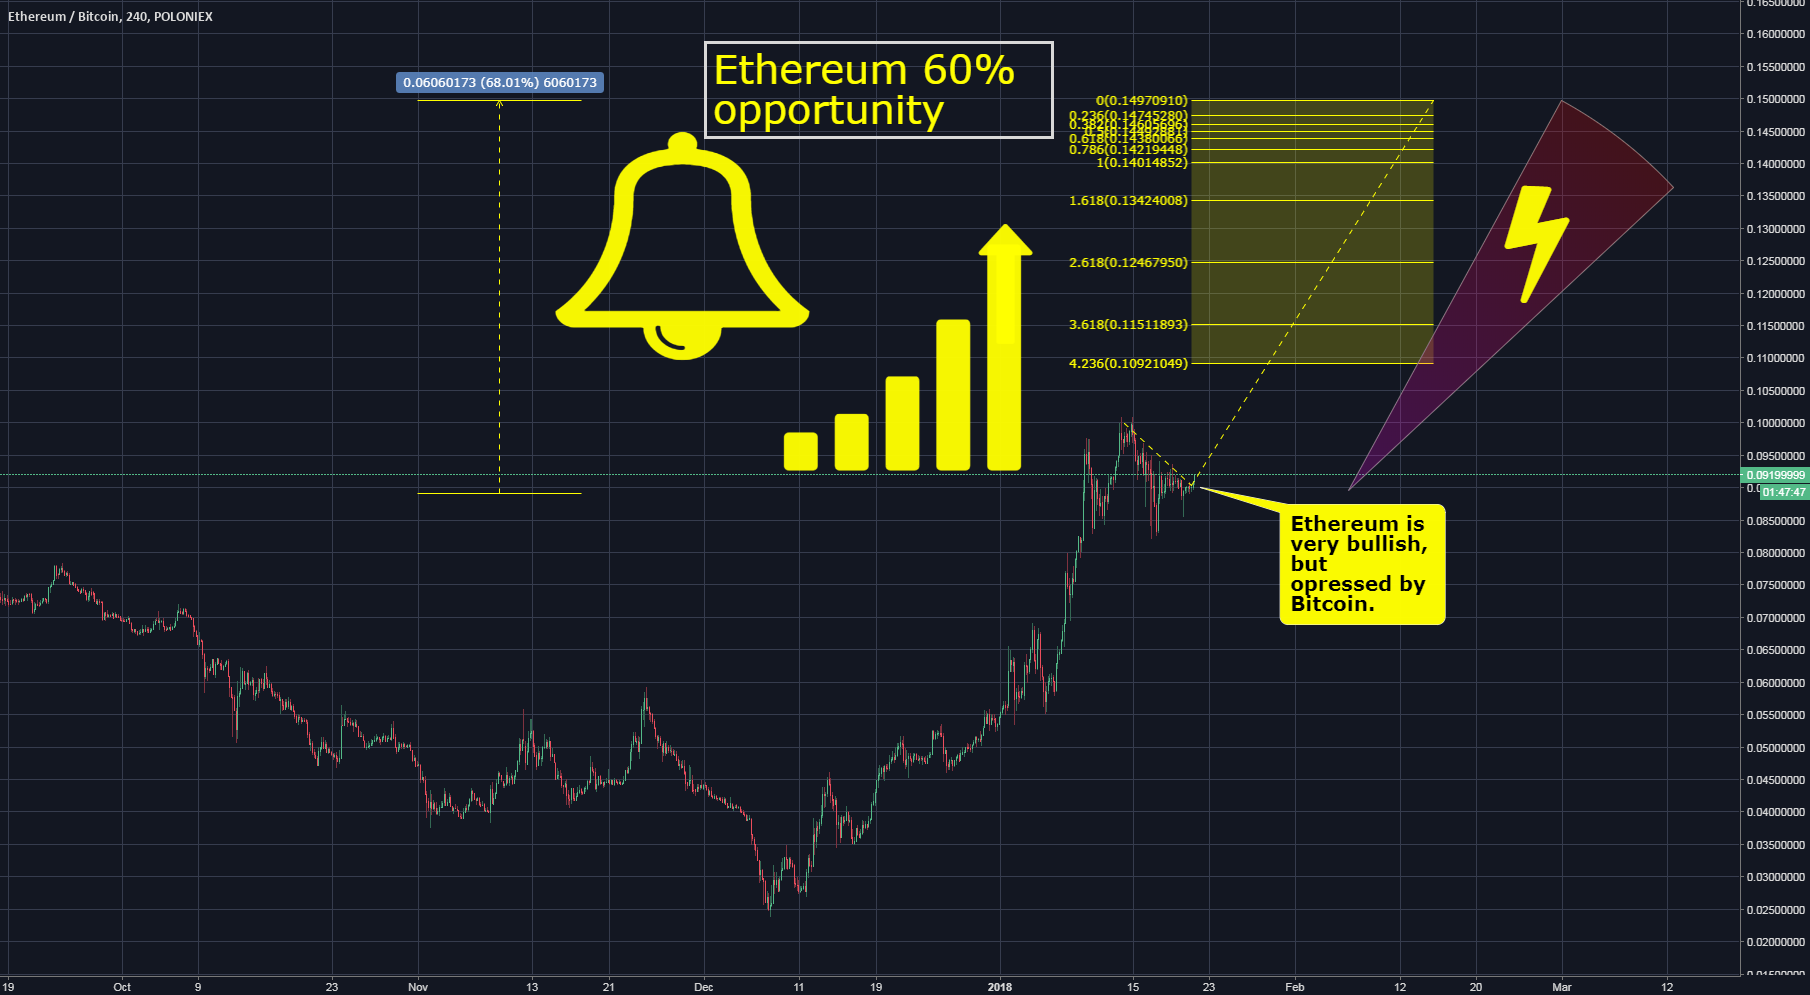 Ethereum/Bitcoin 60% earning, shorter time period, aproximately